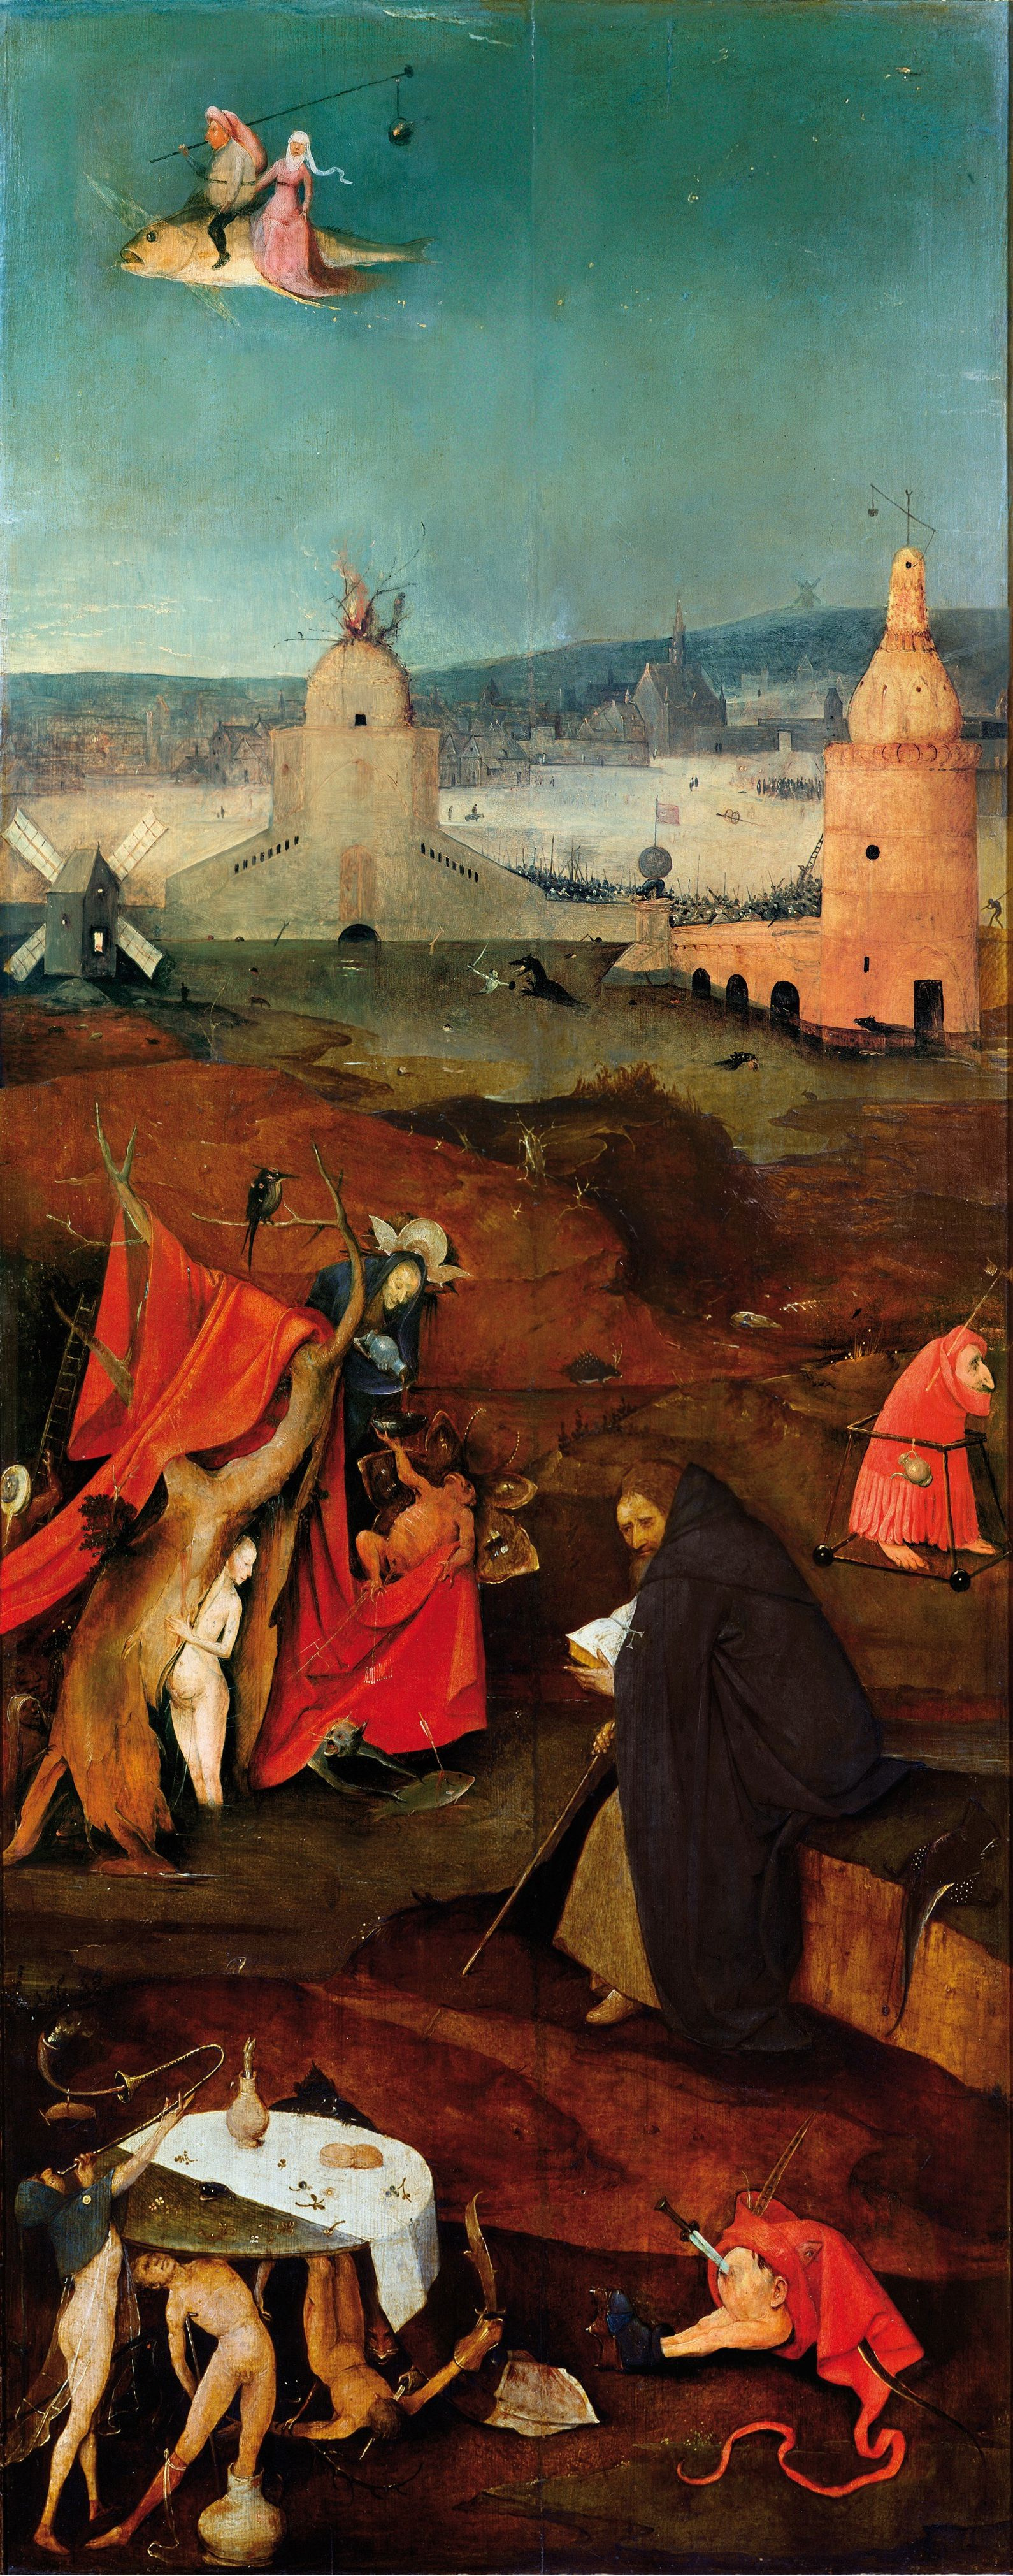 Hieronymus Bosch. The Temptation Of St. Anthony. Right wing of a triptych.